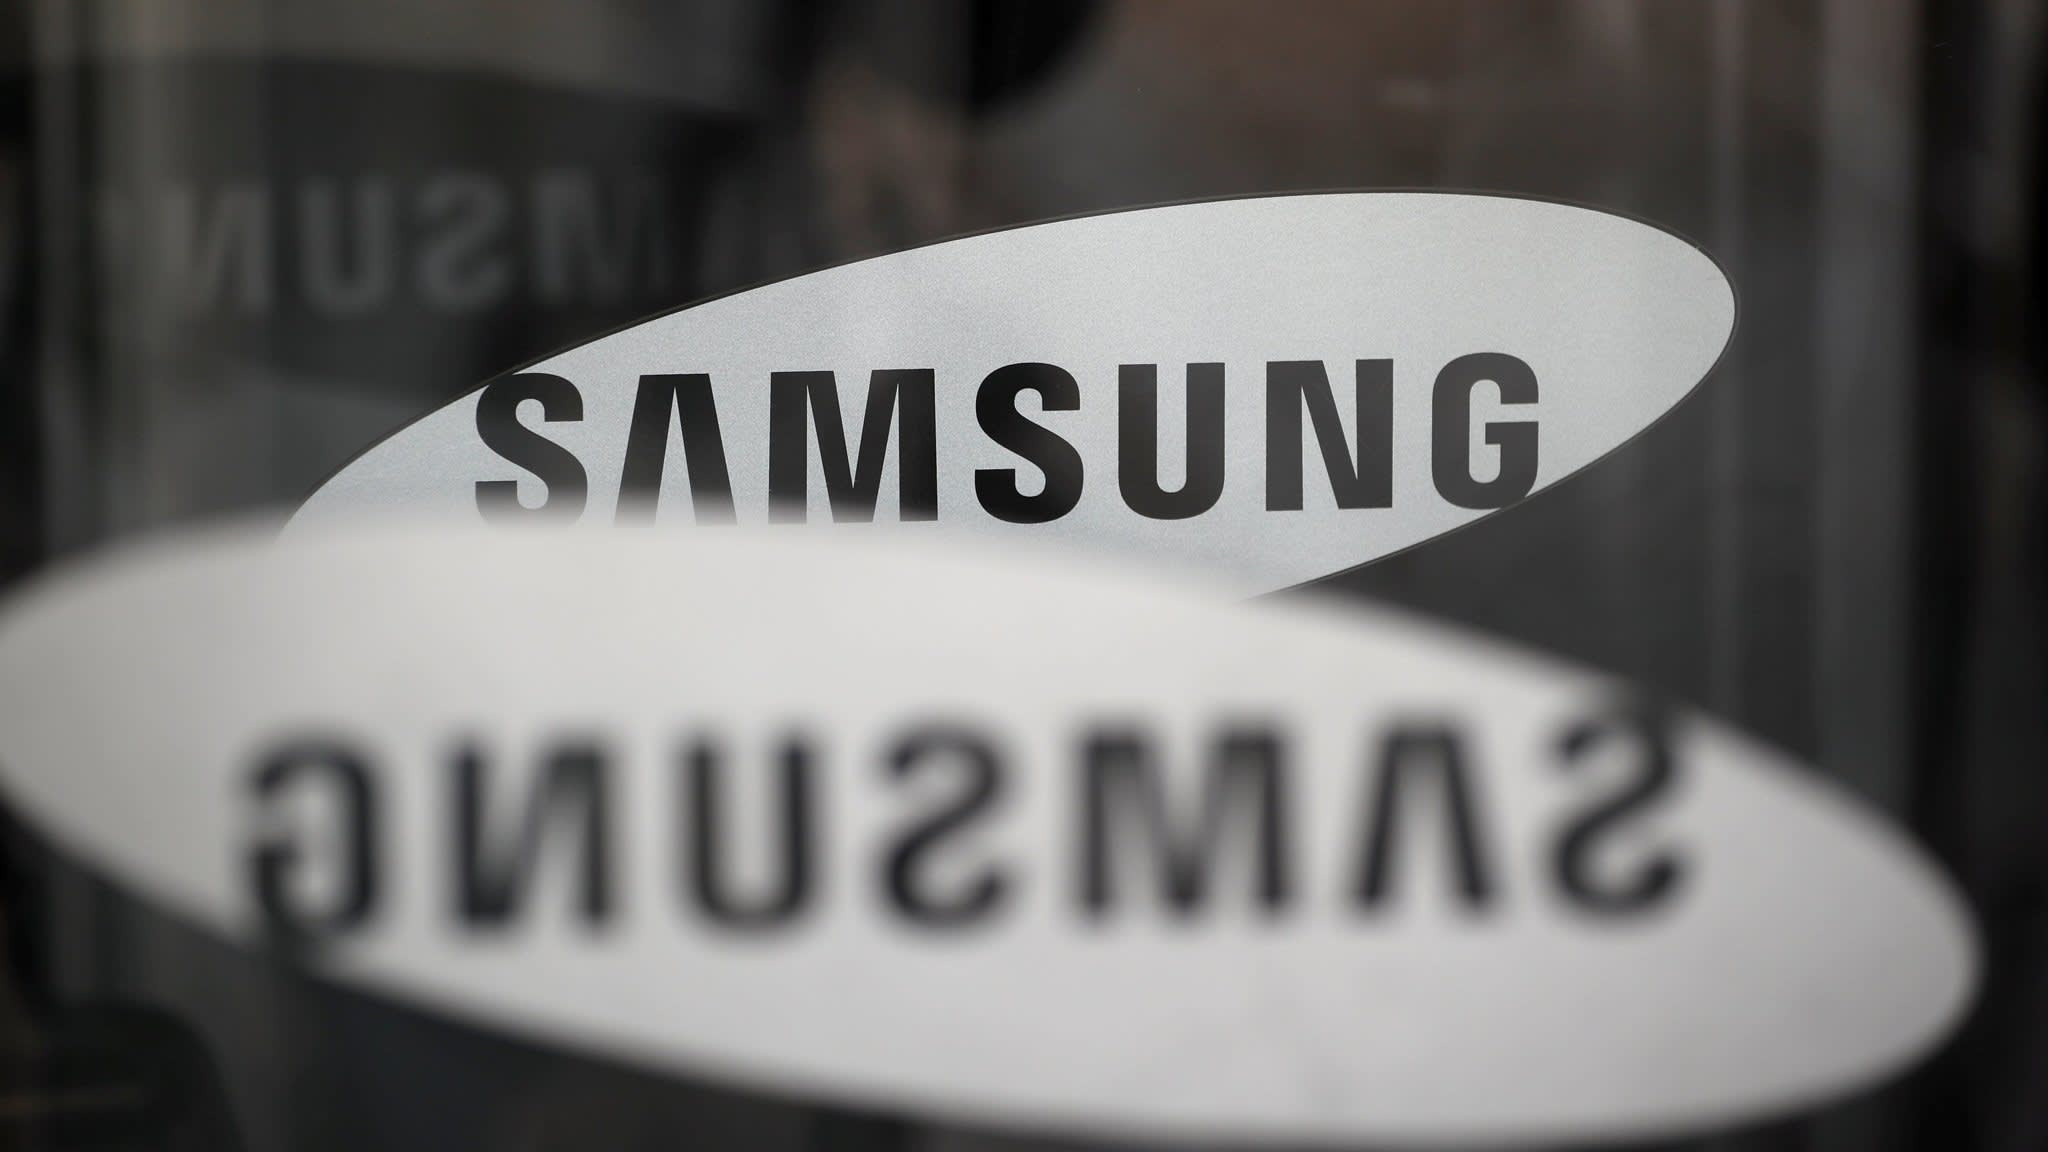 Samsung outlines $160bn investment plan to underpin profits